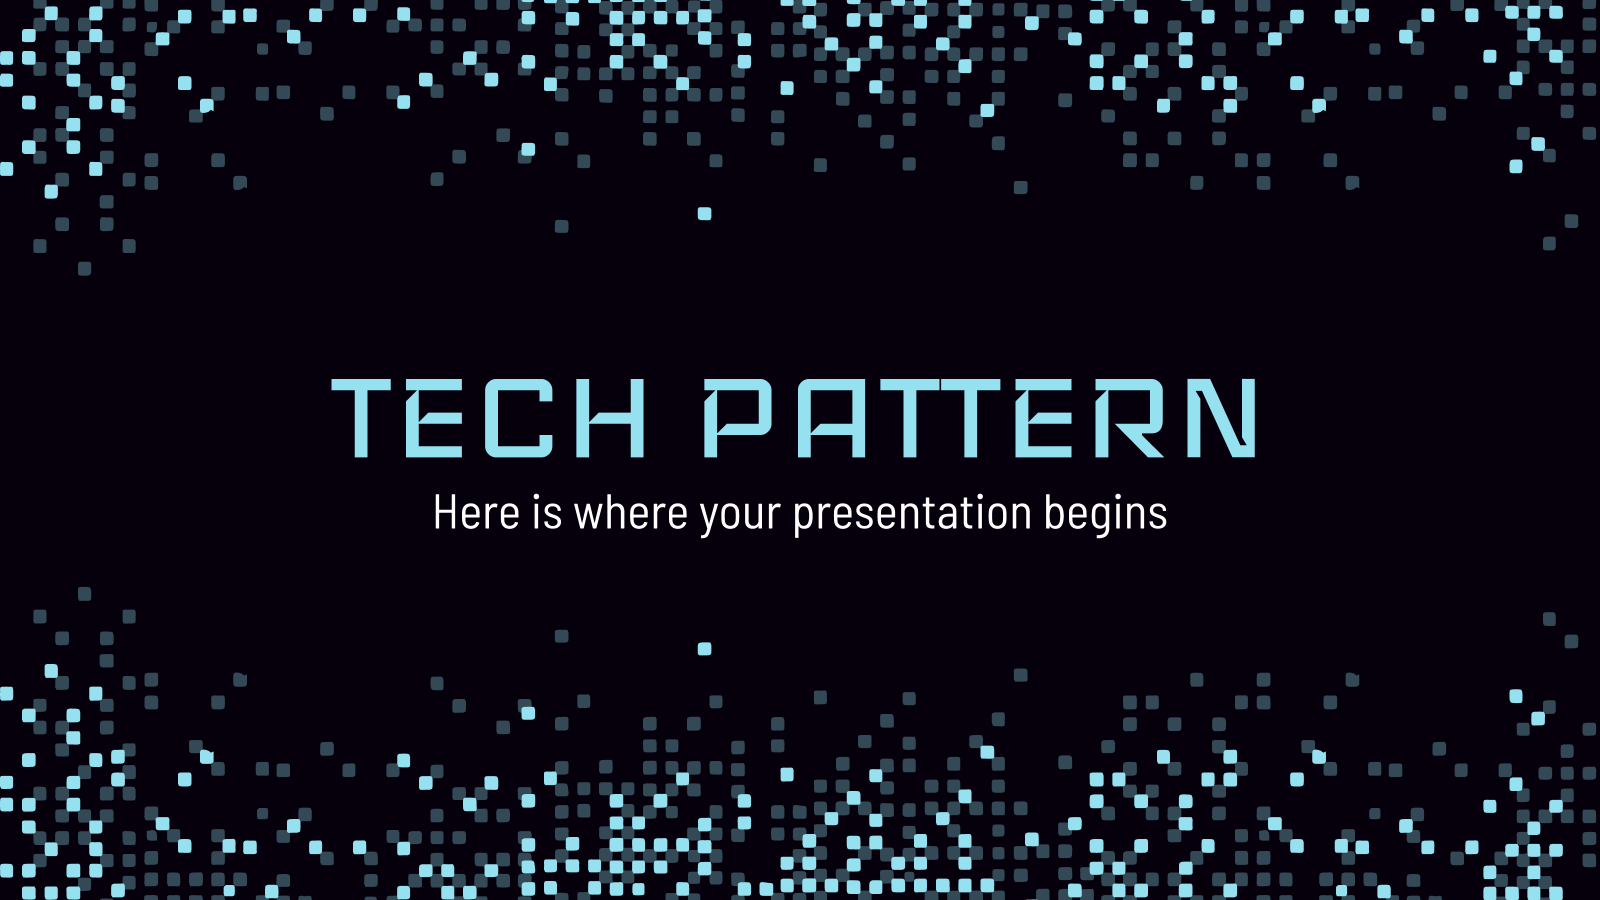 Tech Pattern presentation template